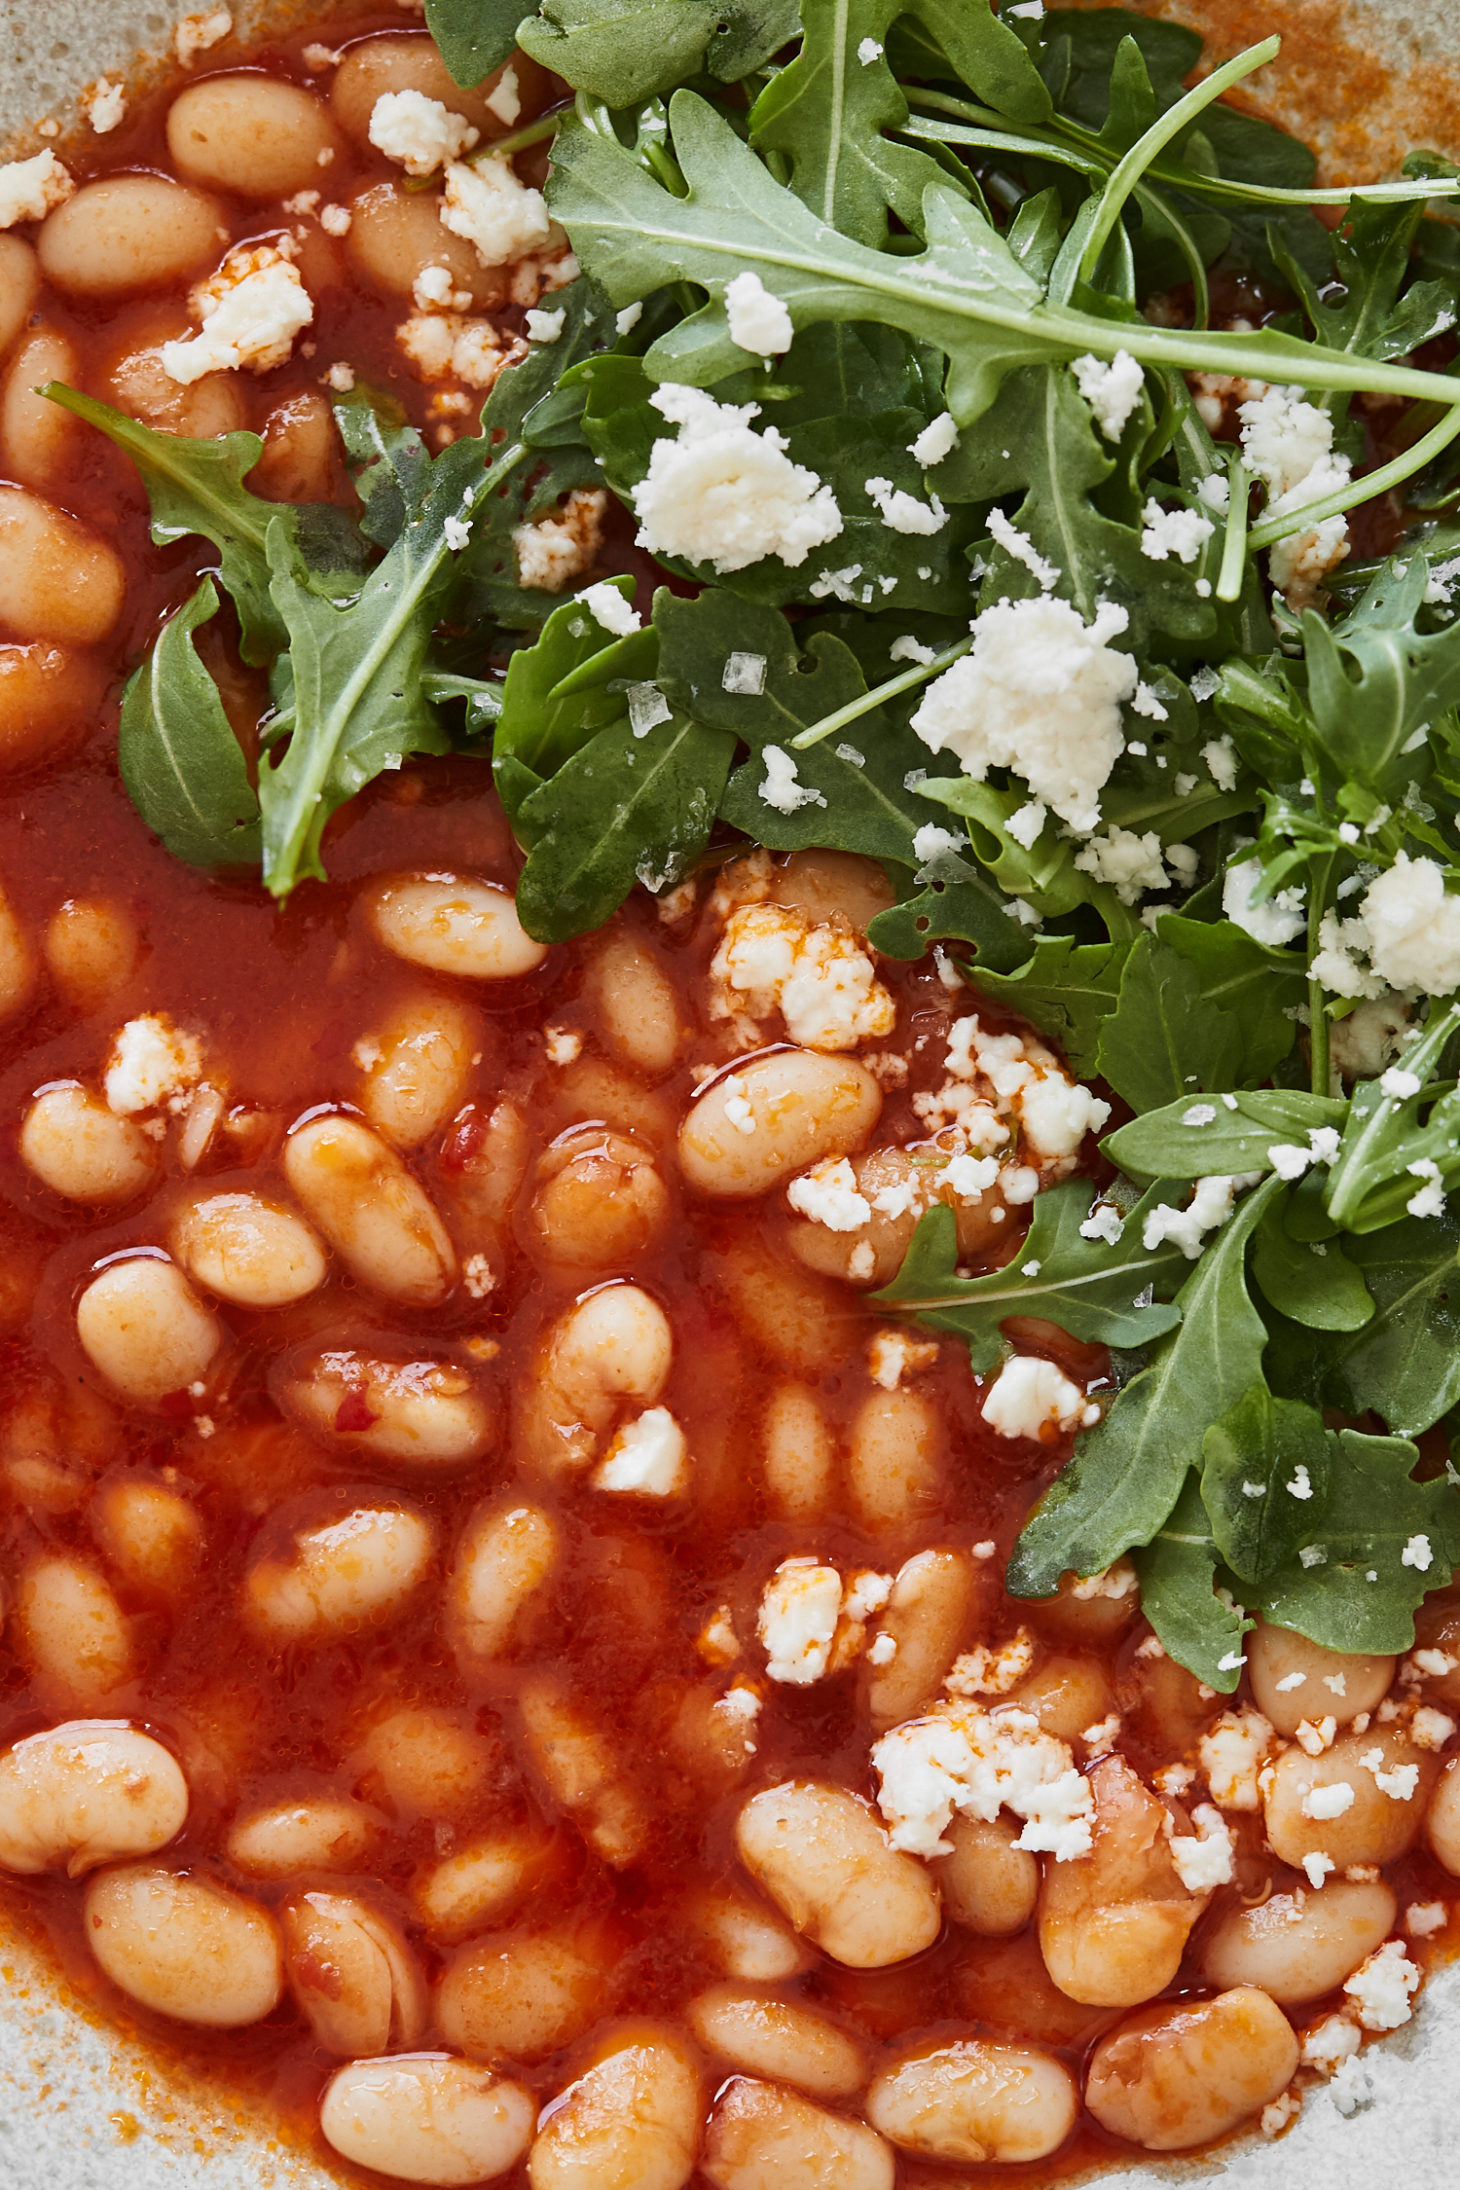 Close-up image of white beans in a tomato broth with arugula and feta on top.